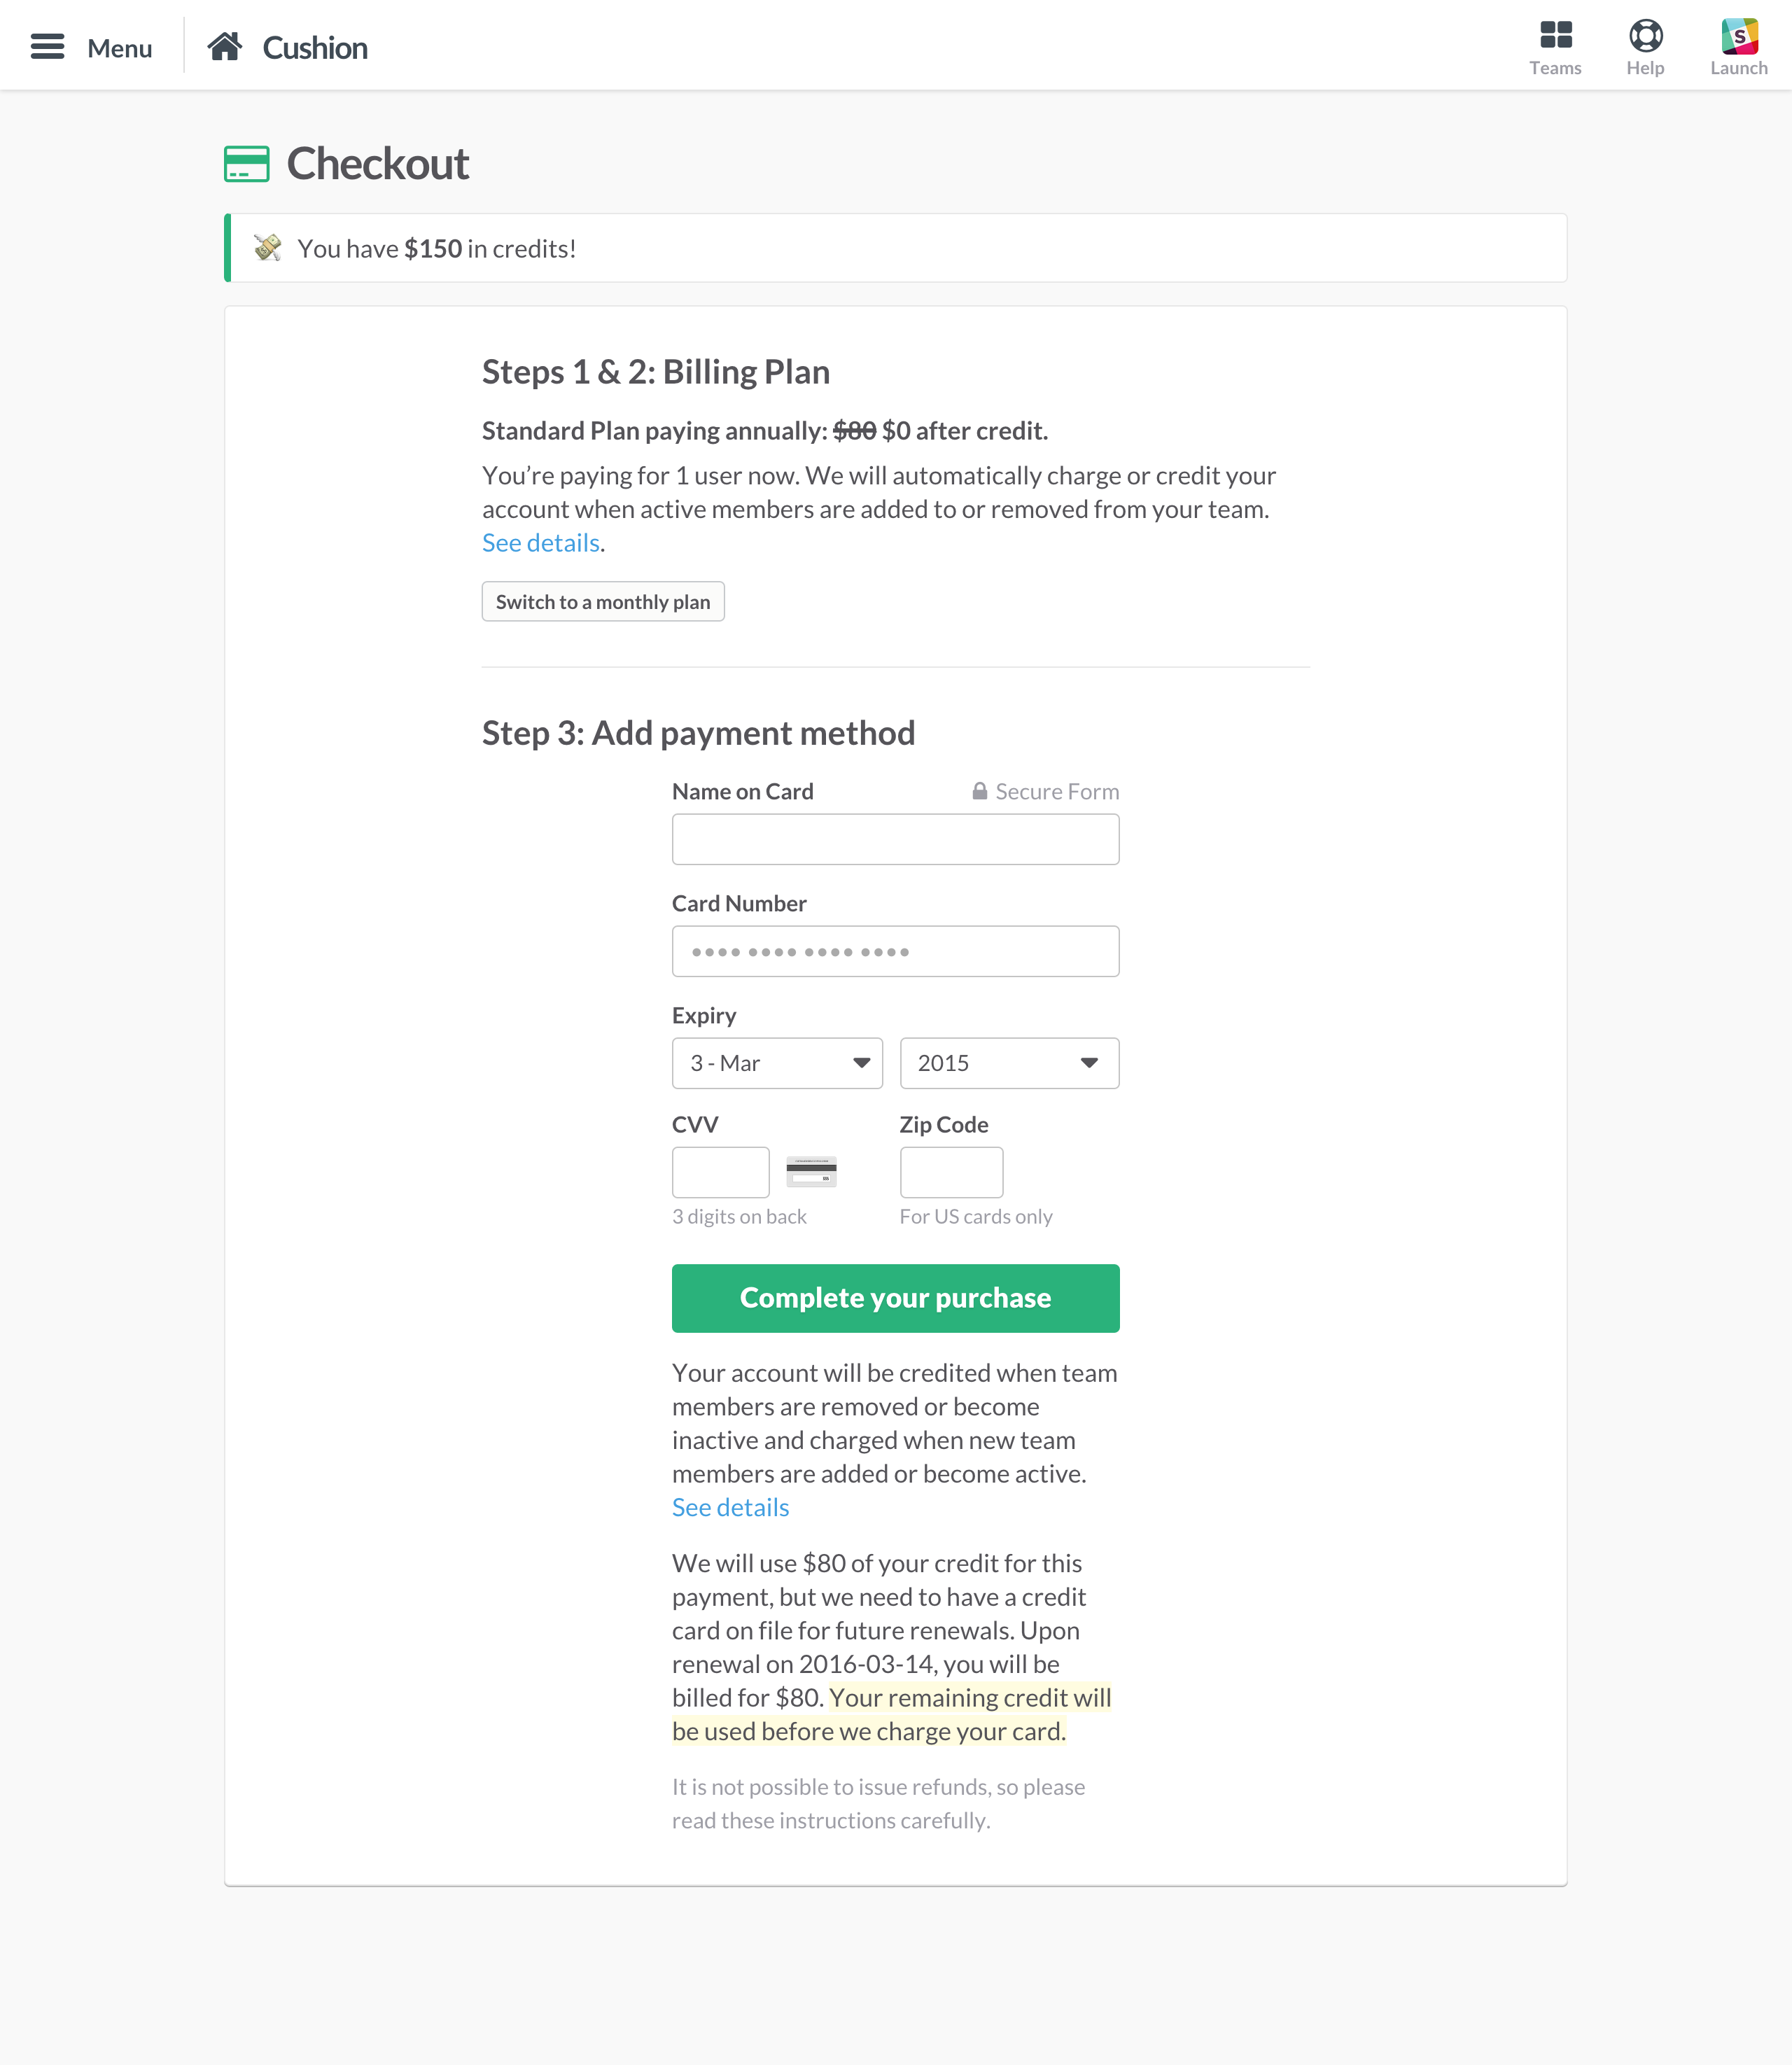 screencapture-cushionapp-slack-com-checkout